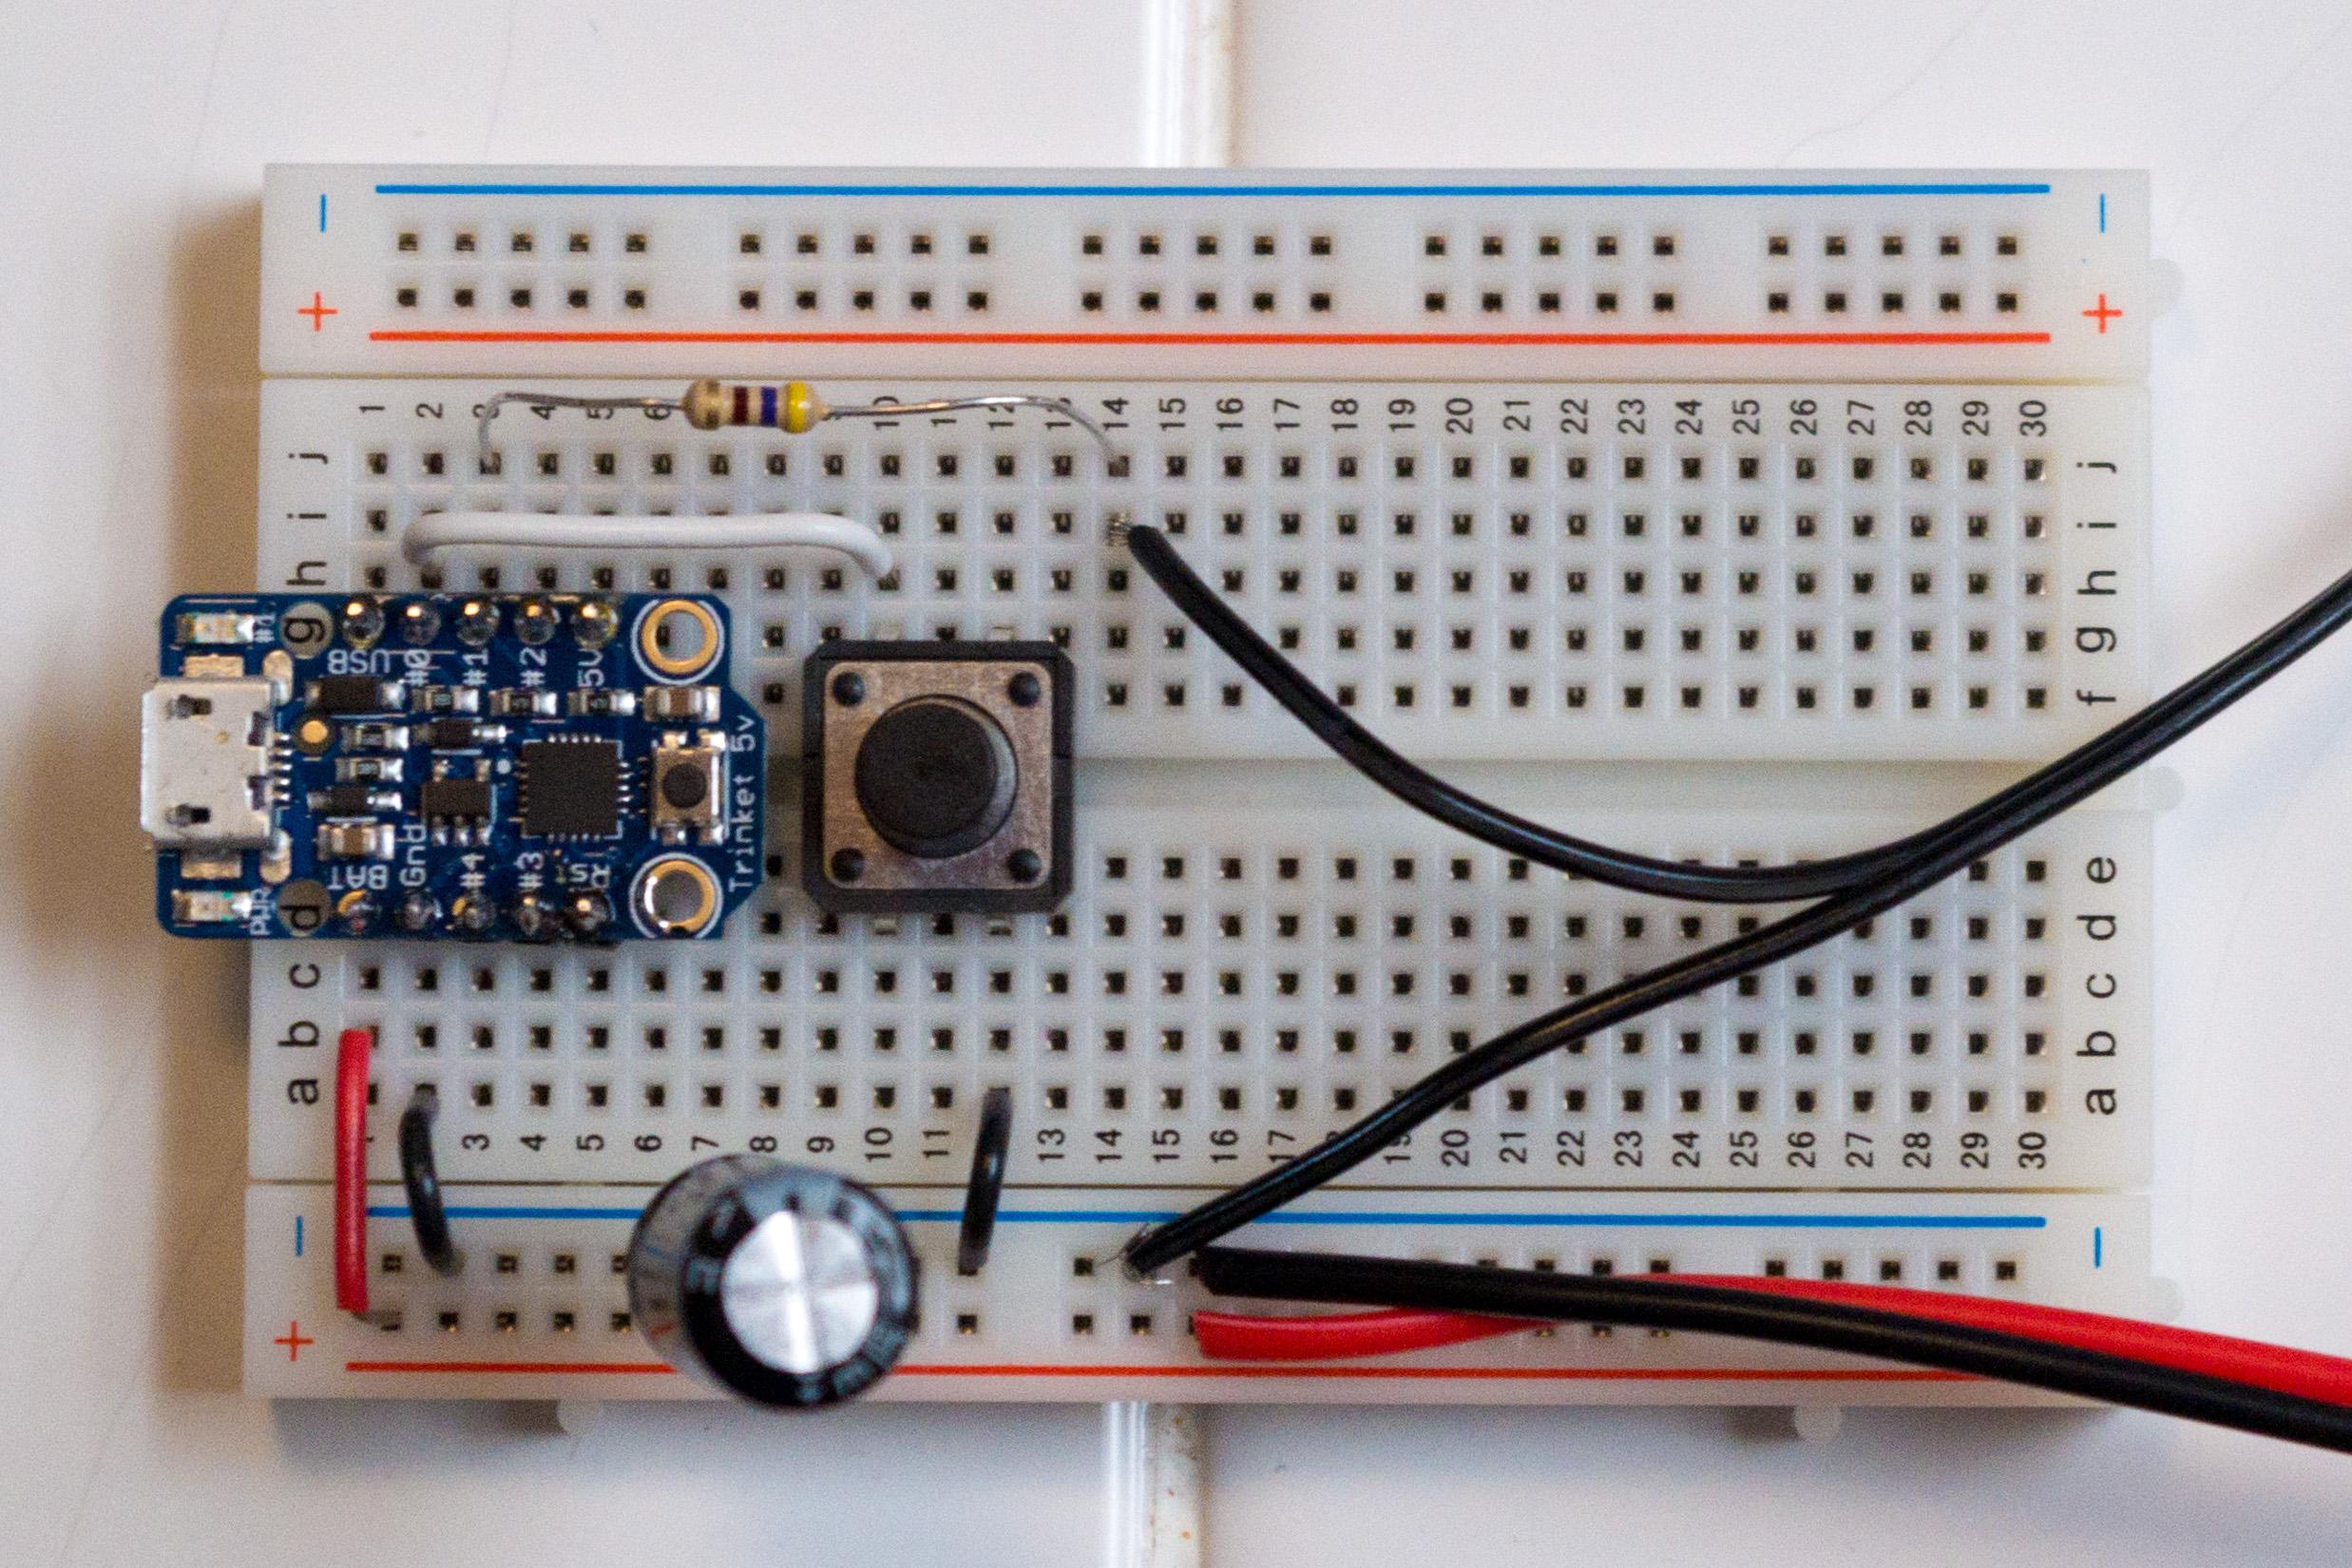 Trinket and other components on a breadboard